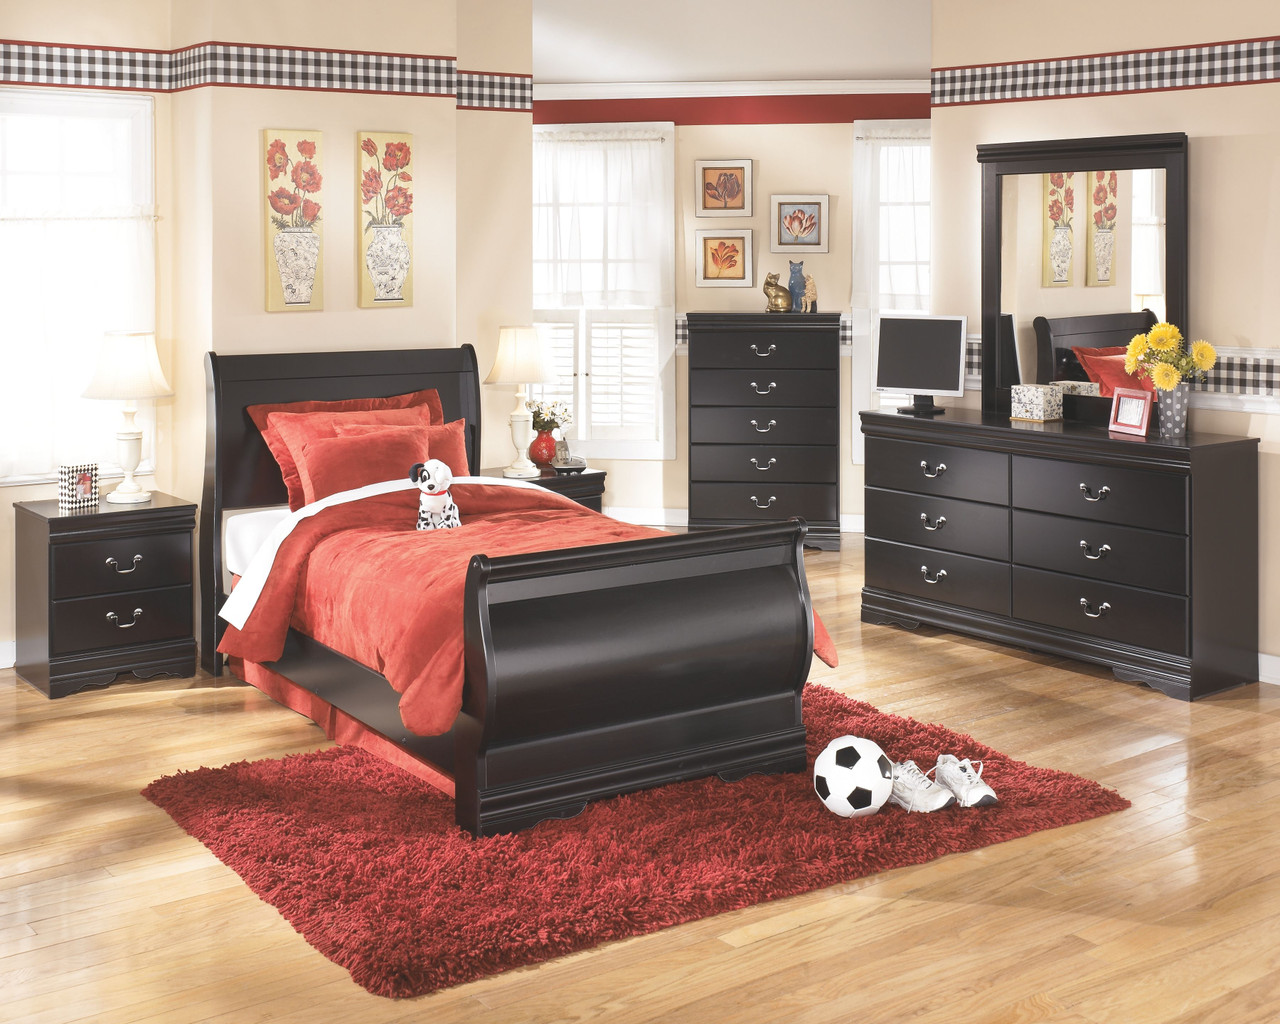 The Huey Vineyard Black 6 Pc Dresser Mirror Chest Twin Sleigh Bed Available At Furniture Connection Serving Clarksville Tennessee And Ft Campbell Kentucky